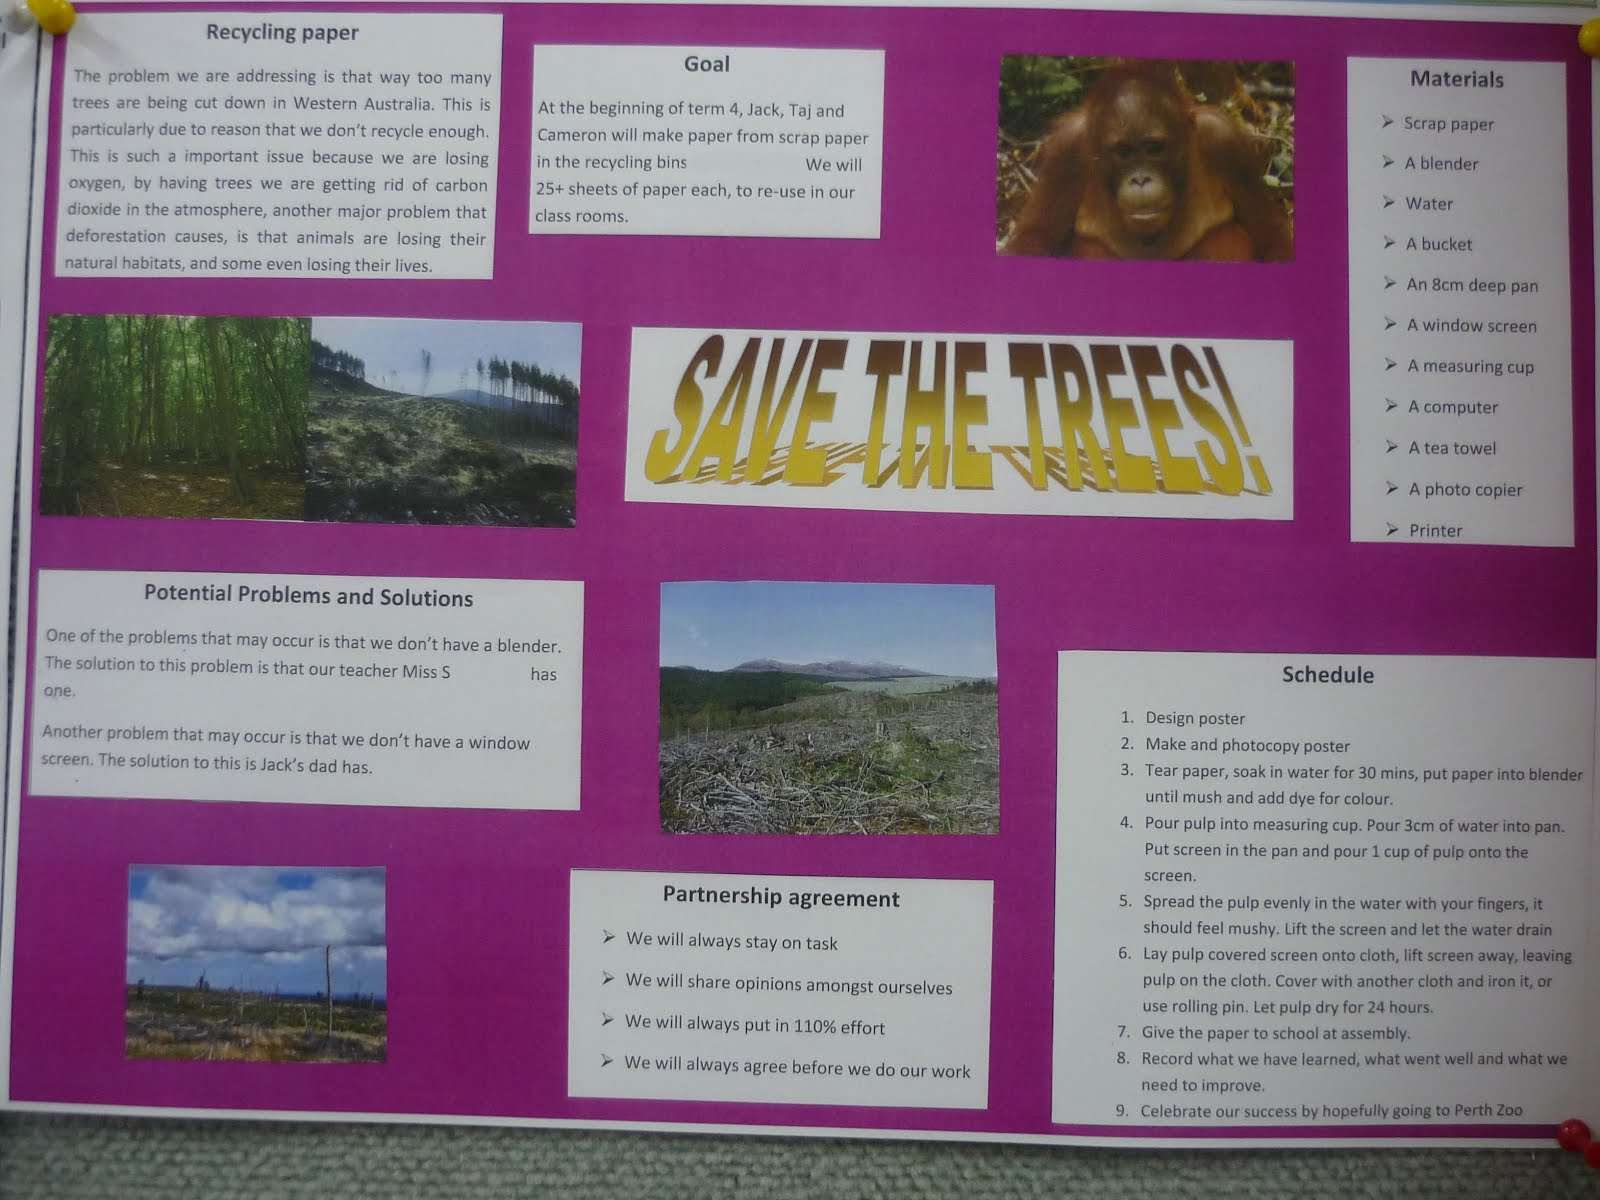 School Project Posters...